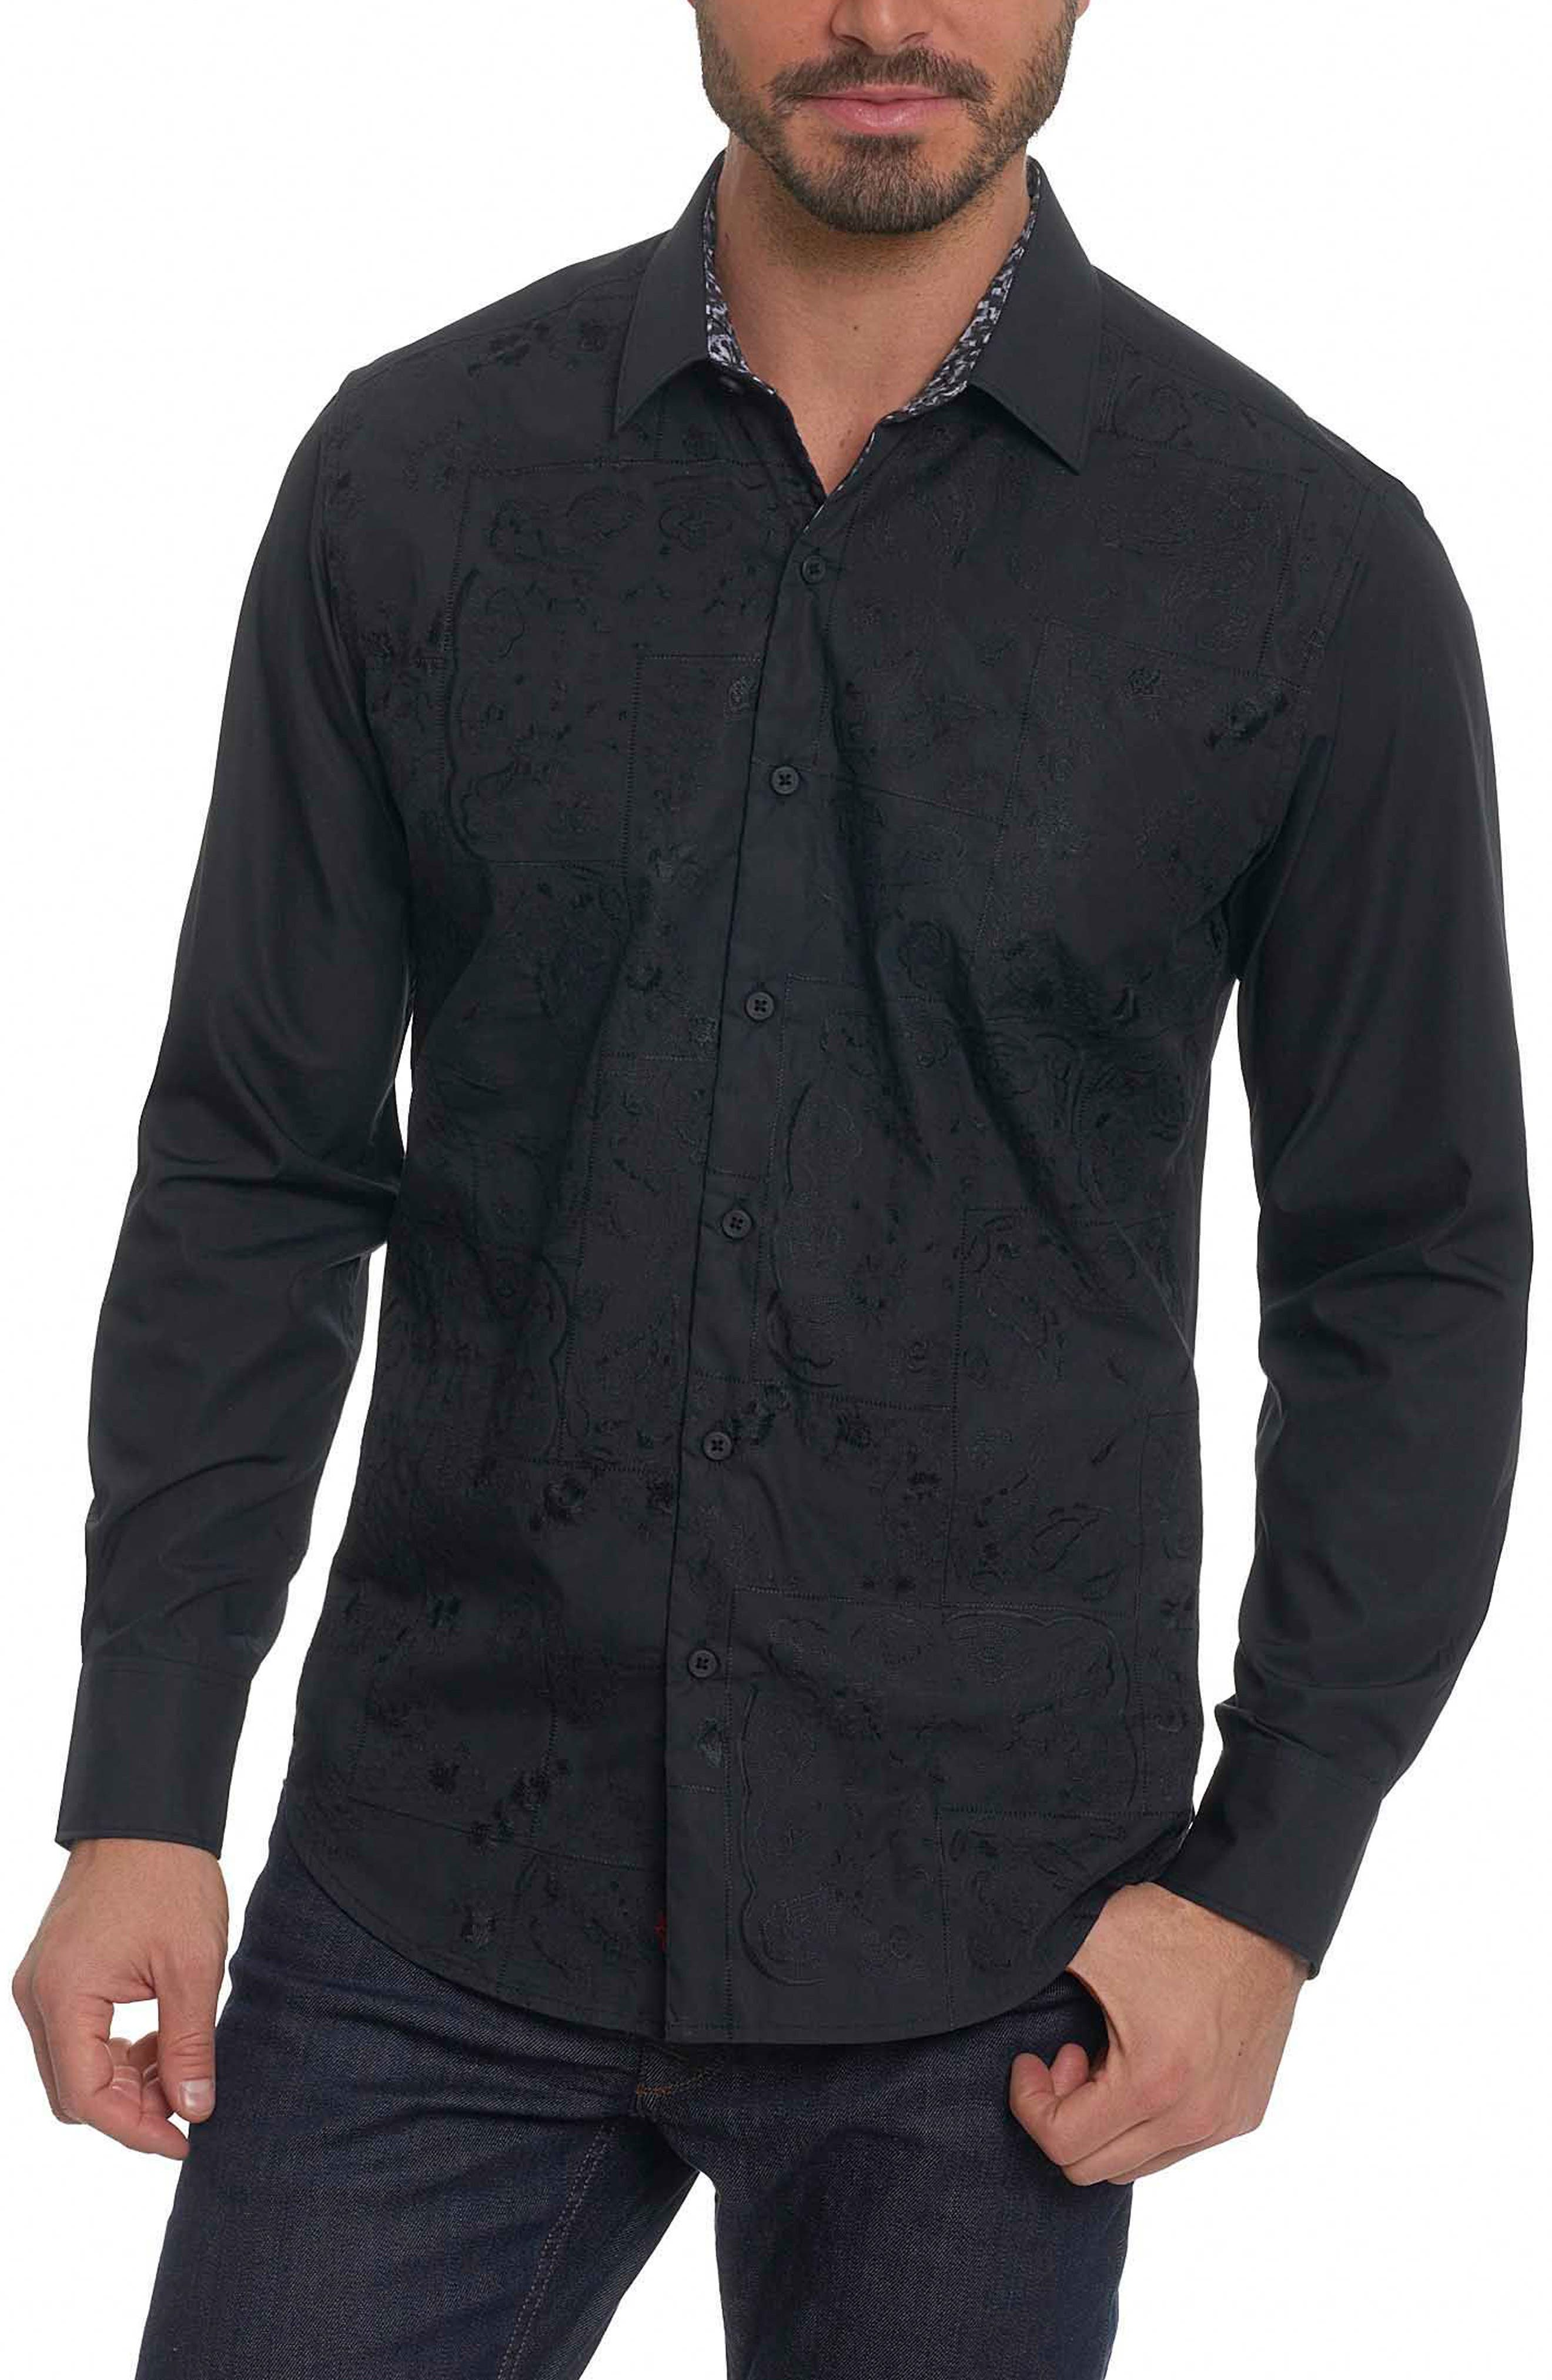 Onyx Classic Fit Embroidered Sport Shirt,                         Main,                         color, Black